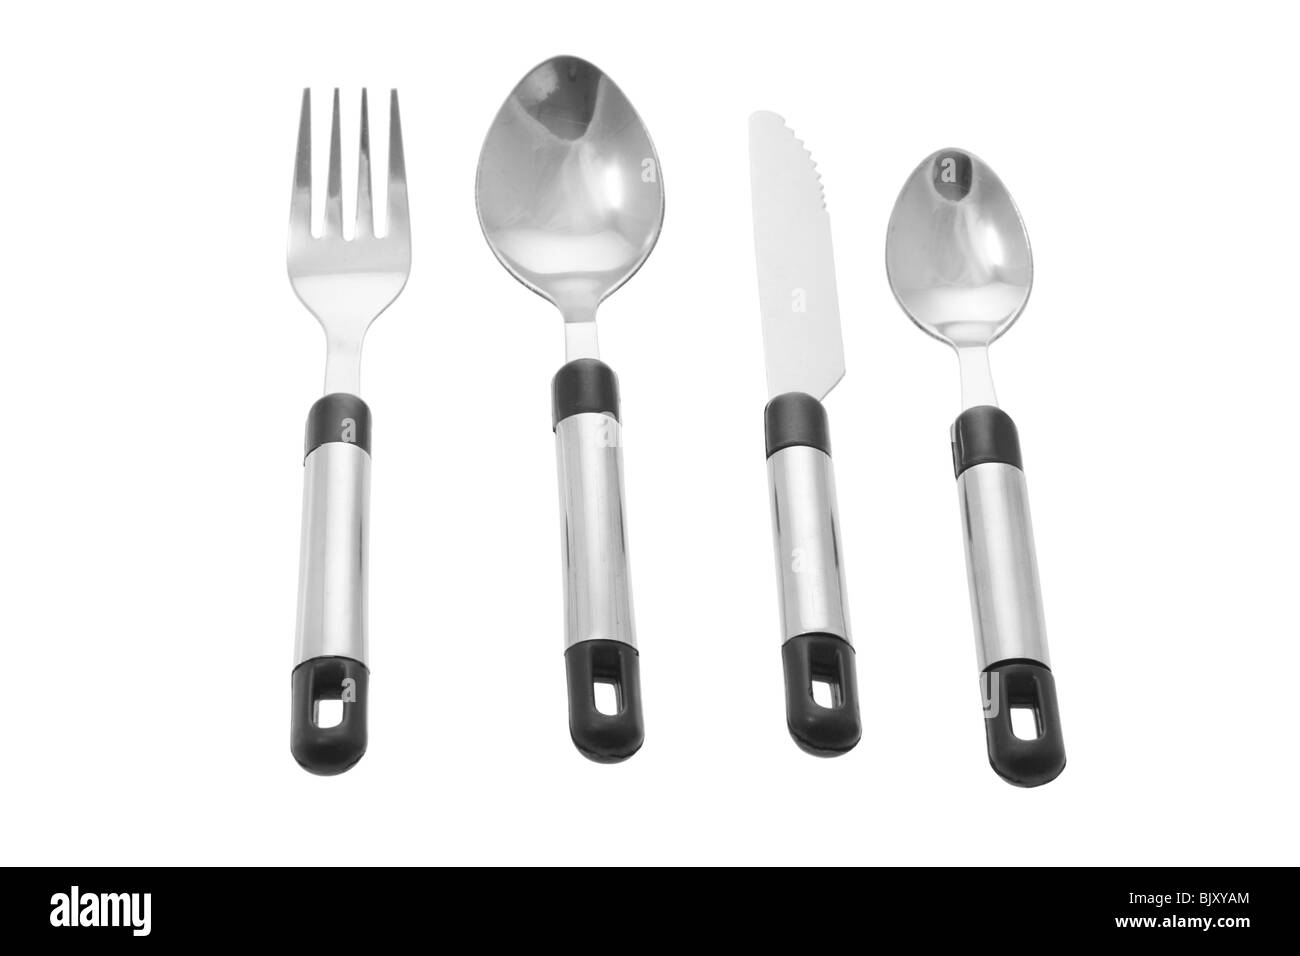 Cutlery - Stock Image